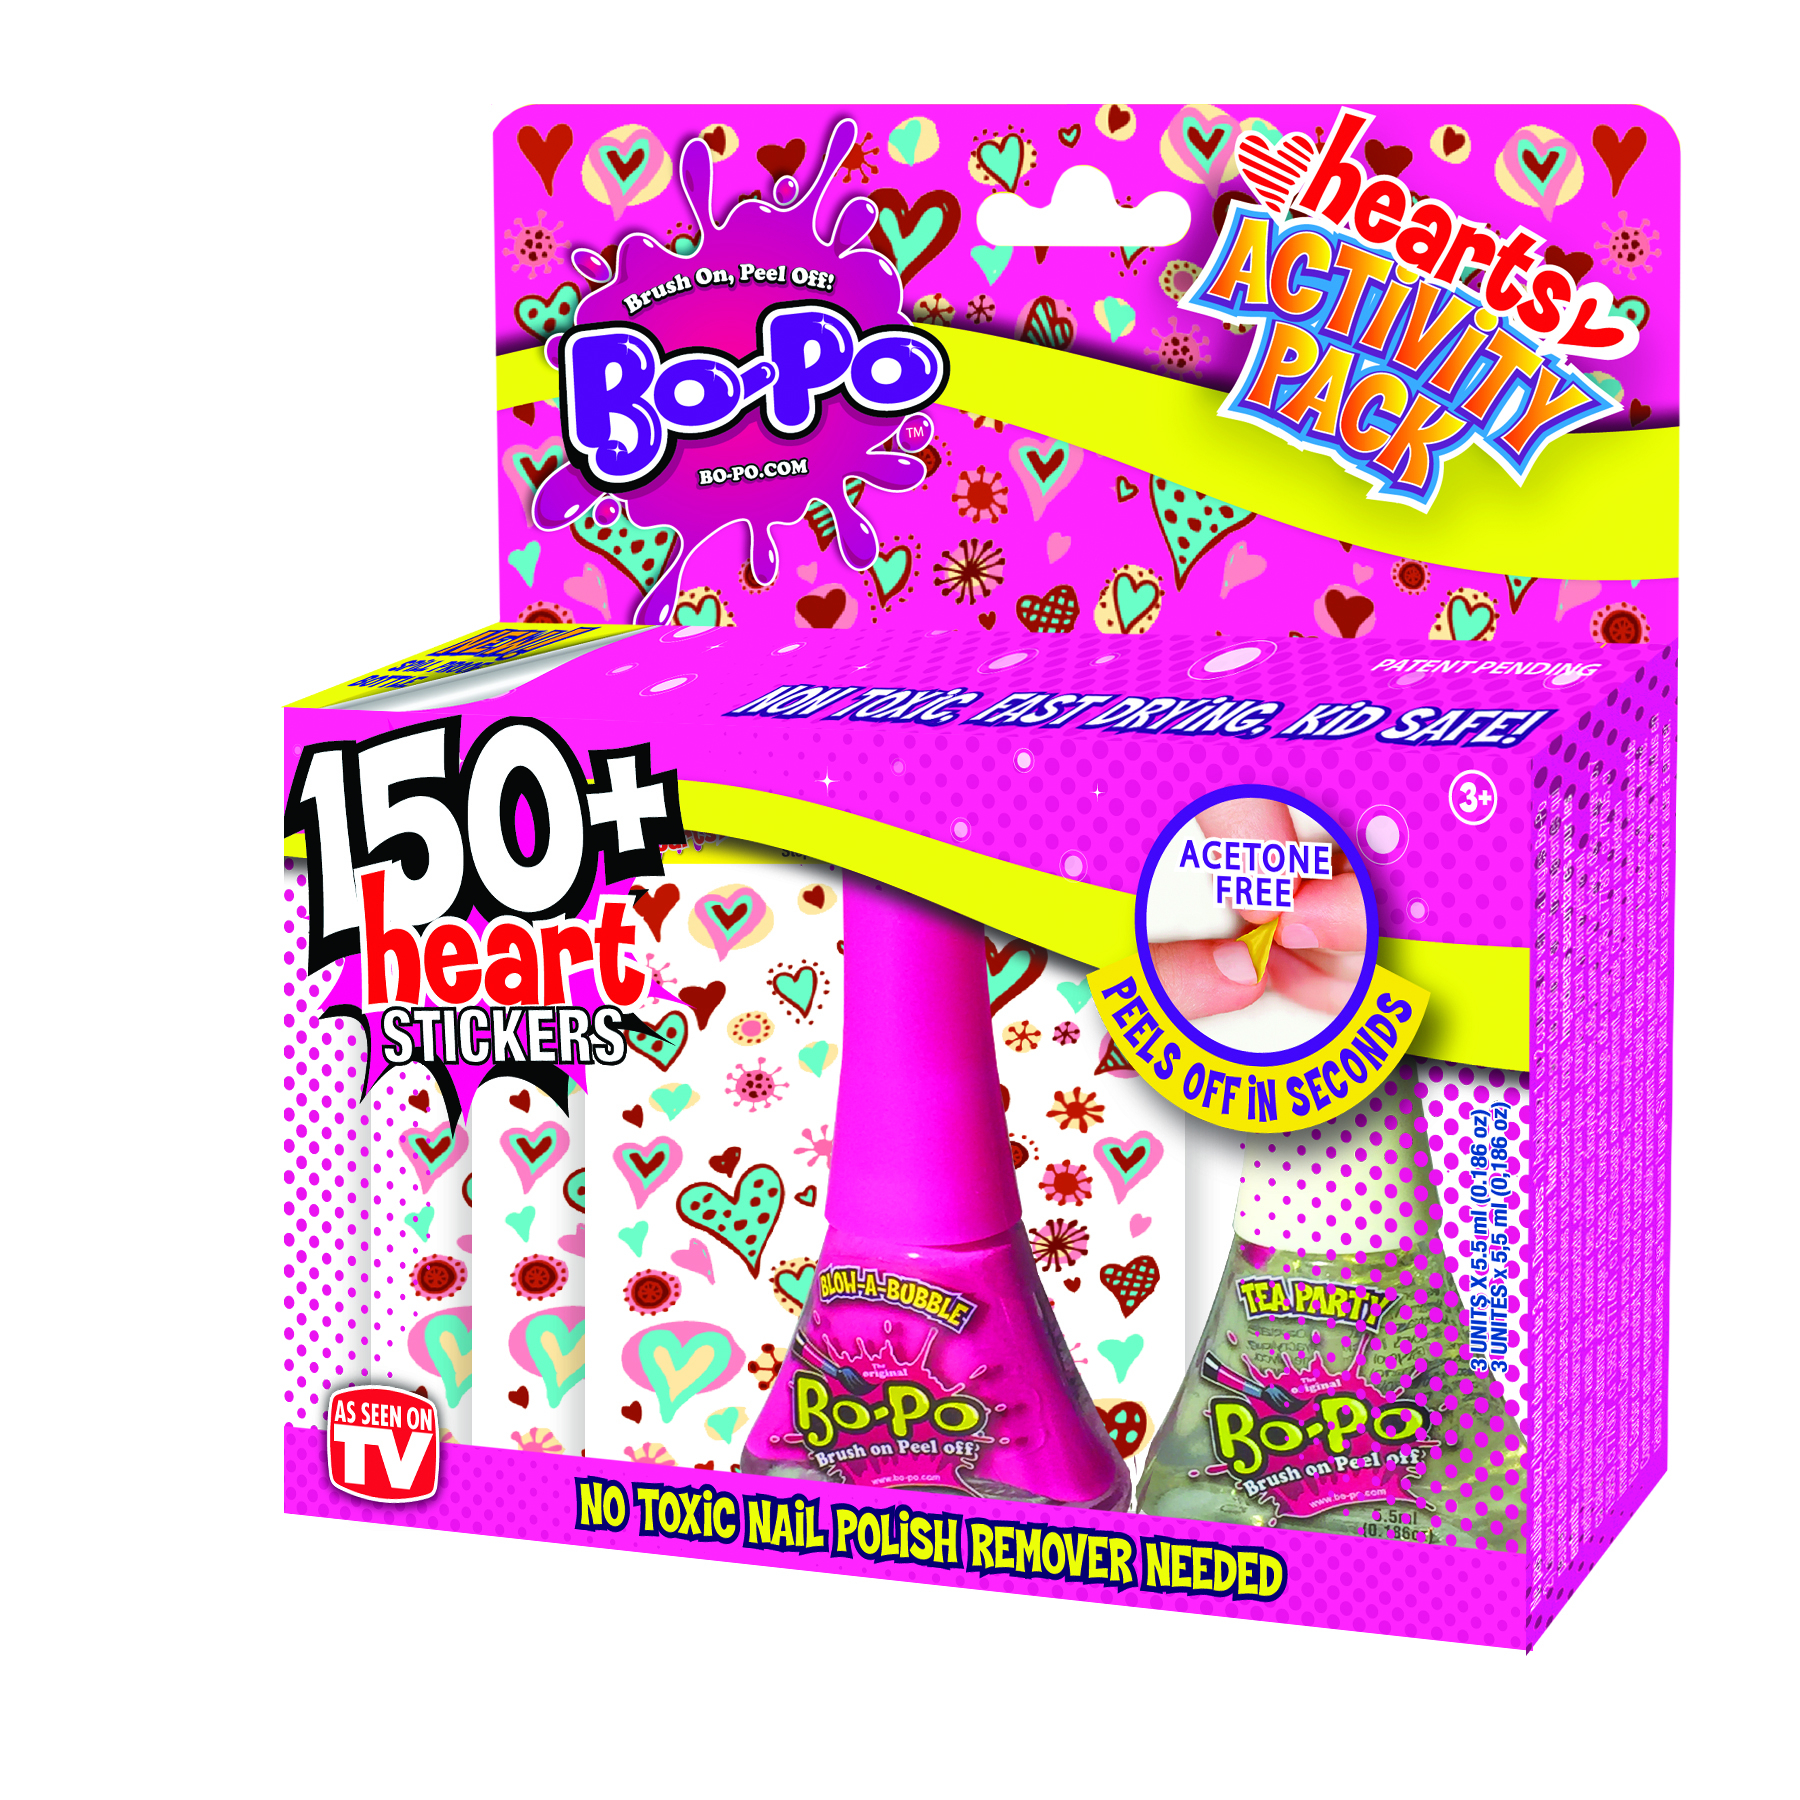 WORXTOYS WORXTOYS BO-PO Activity Pack - Nail Polishes with Stickers